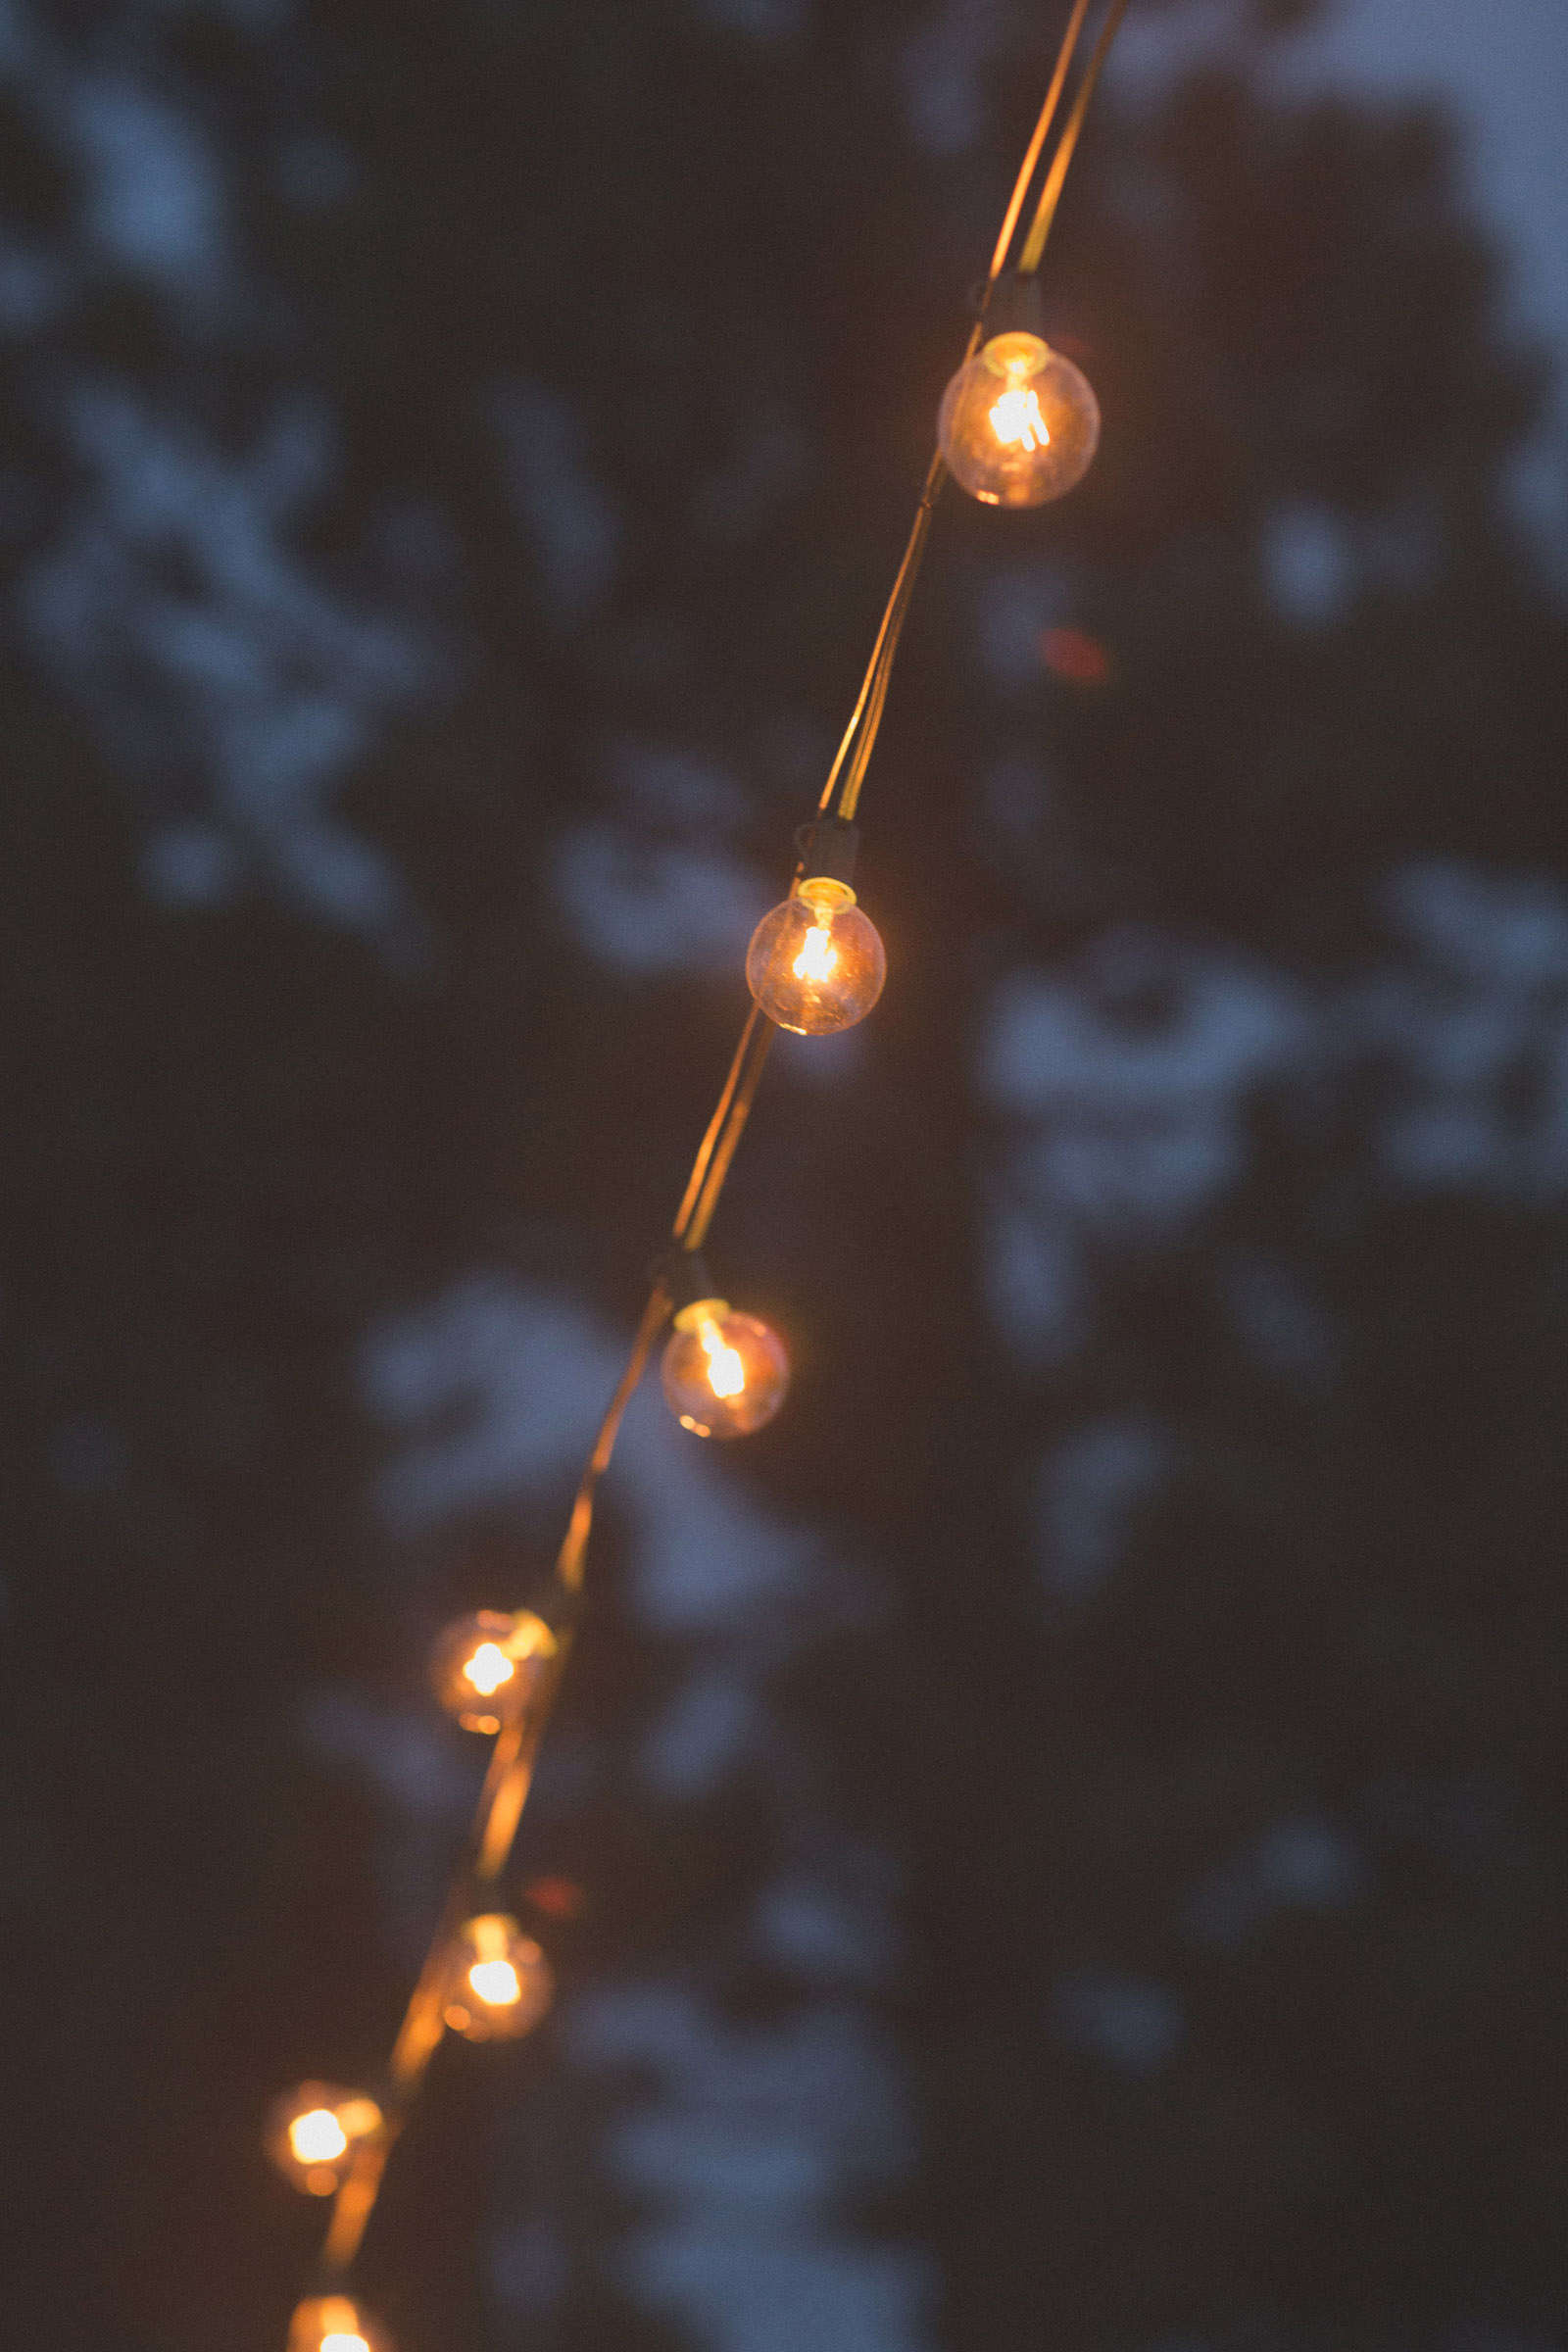 179-reception-ideas-reception-farmington-nm-co-new-mexico-colorado-mancos-ideas-string-lights-cabin-outside-natural-wedding